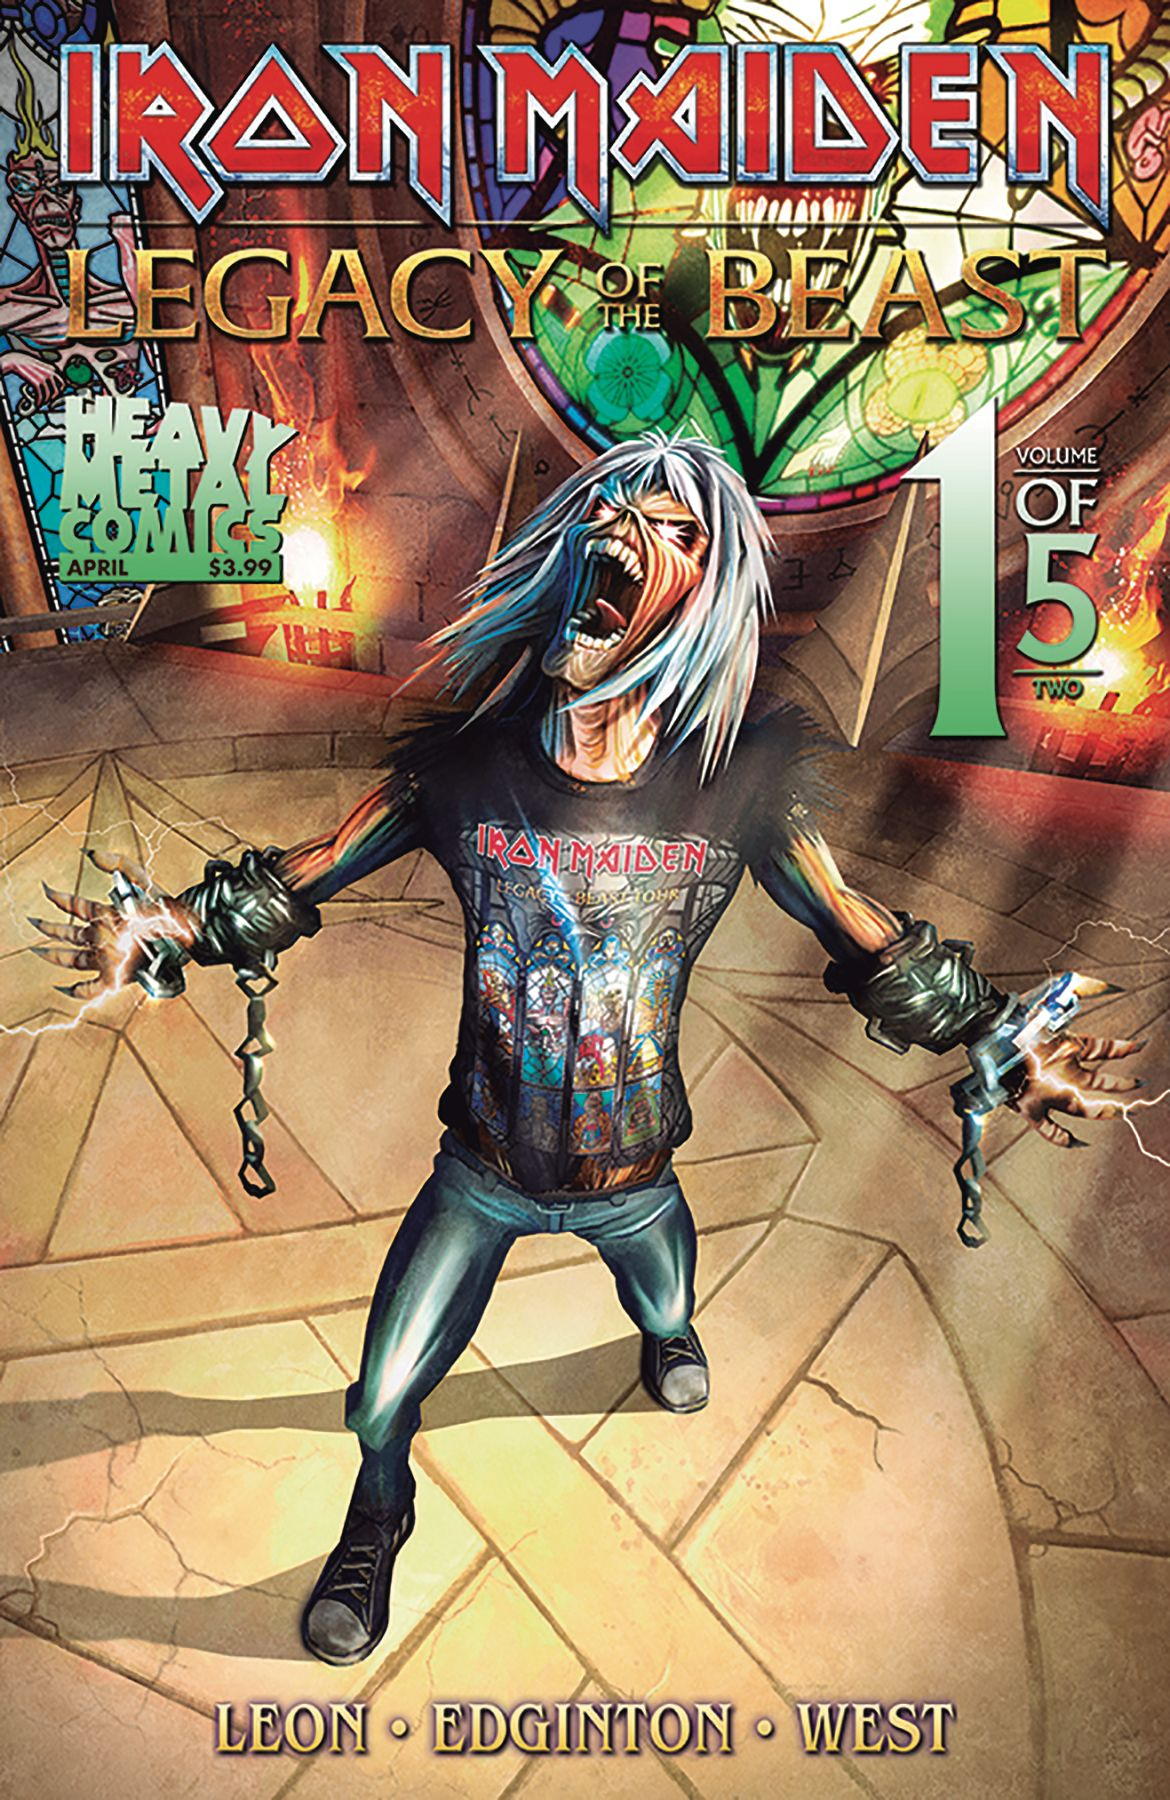 Iron Maiden Legacy Of The Beast Volume 2